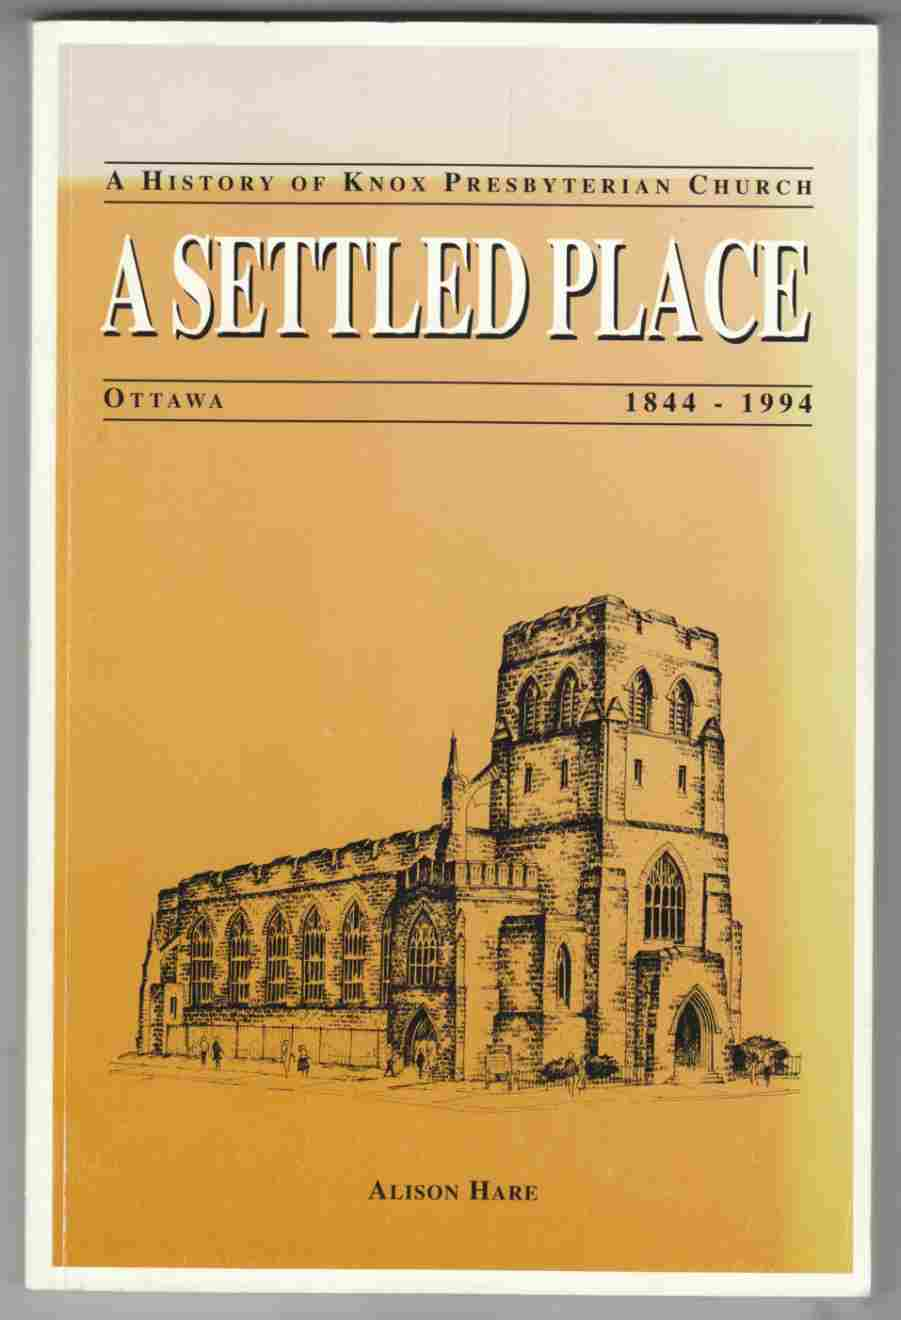 Image for A Settled Place A History of Knox Presbyterian Church, Ottawa 1844 - 1994